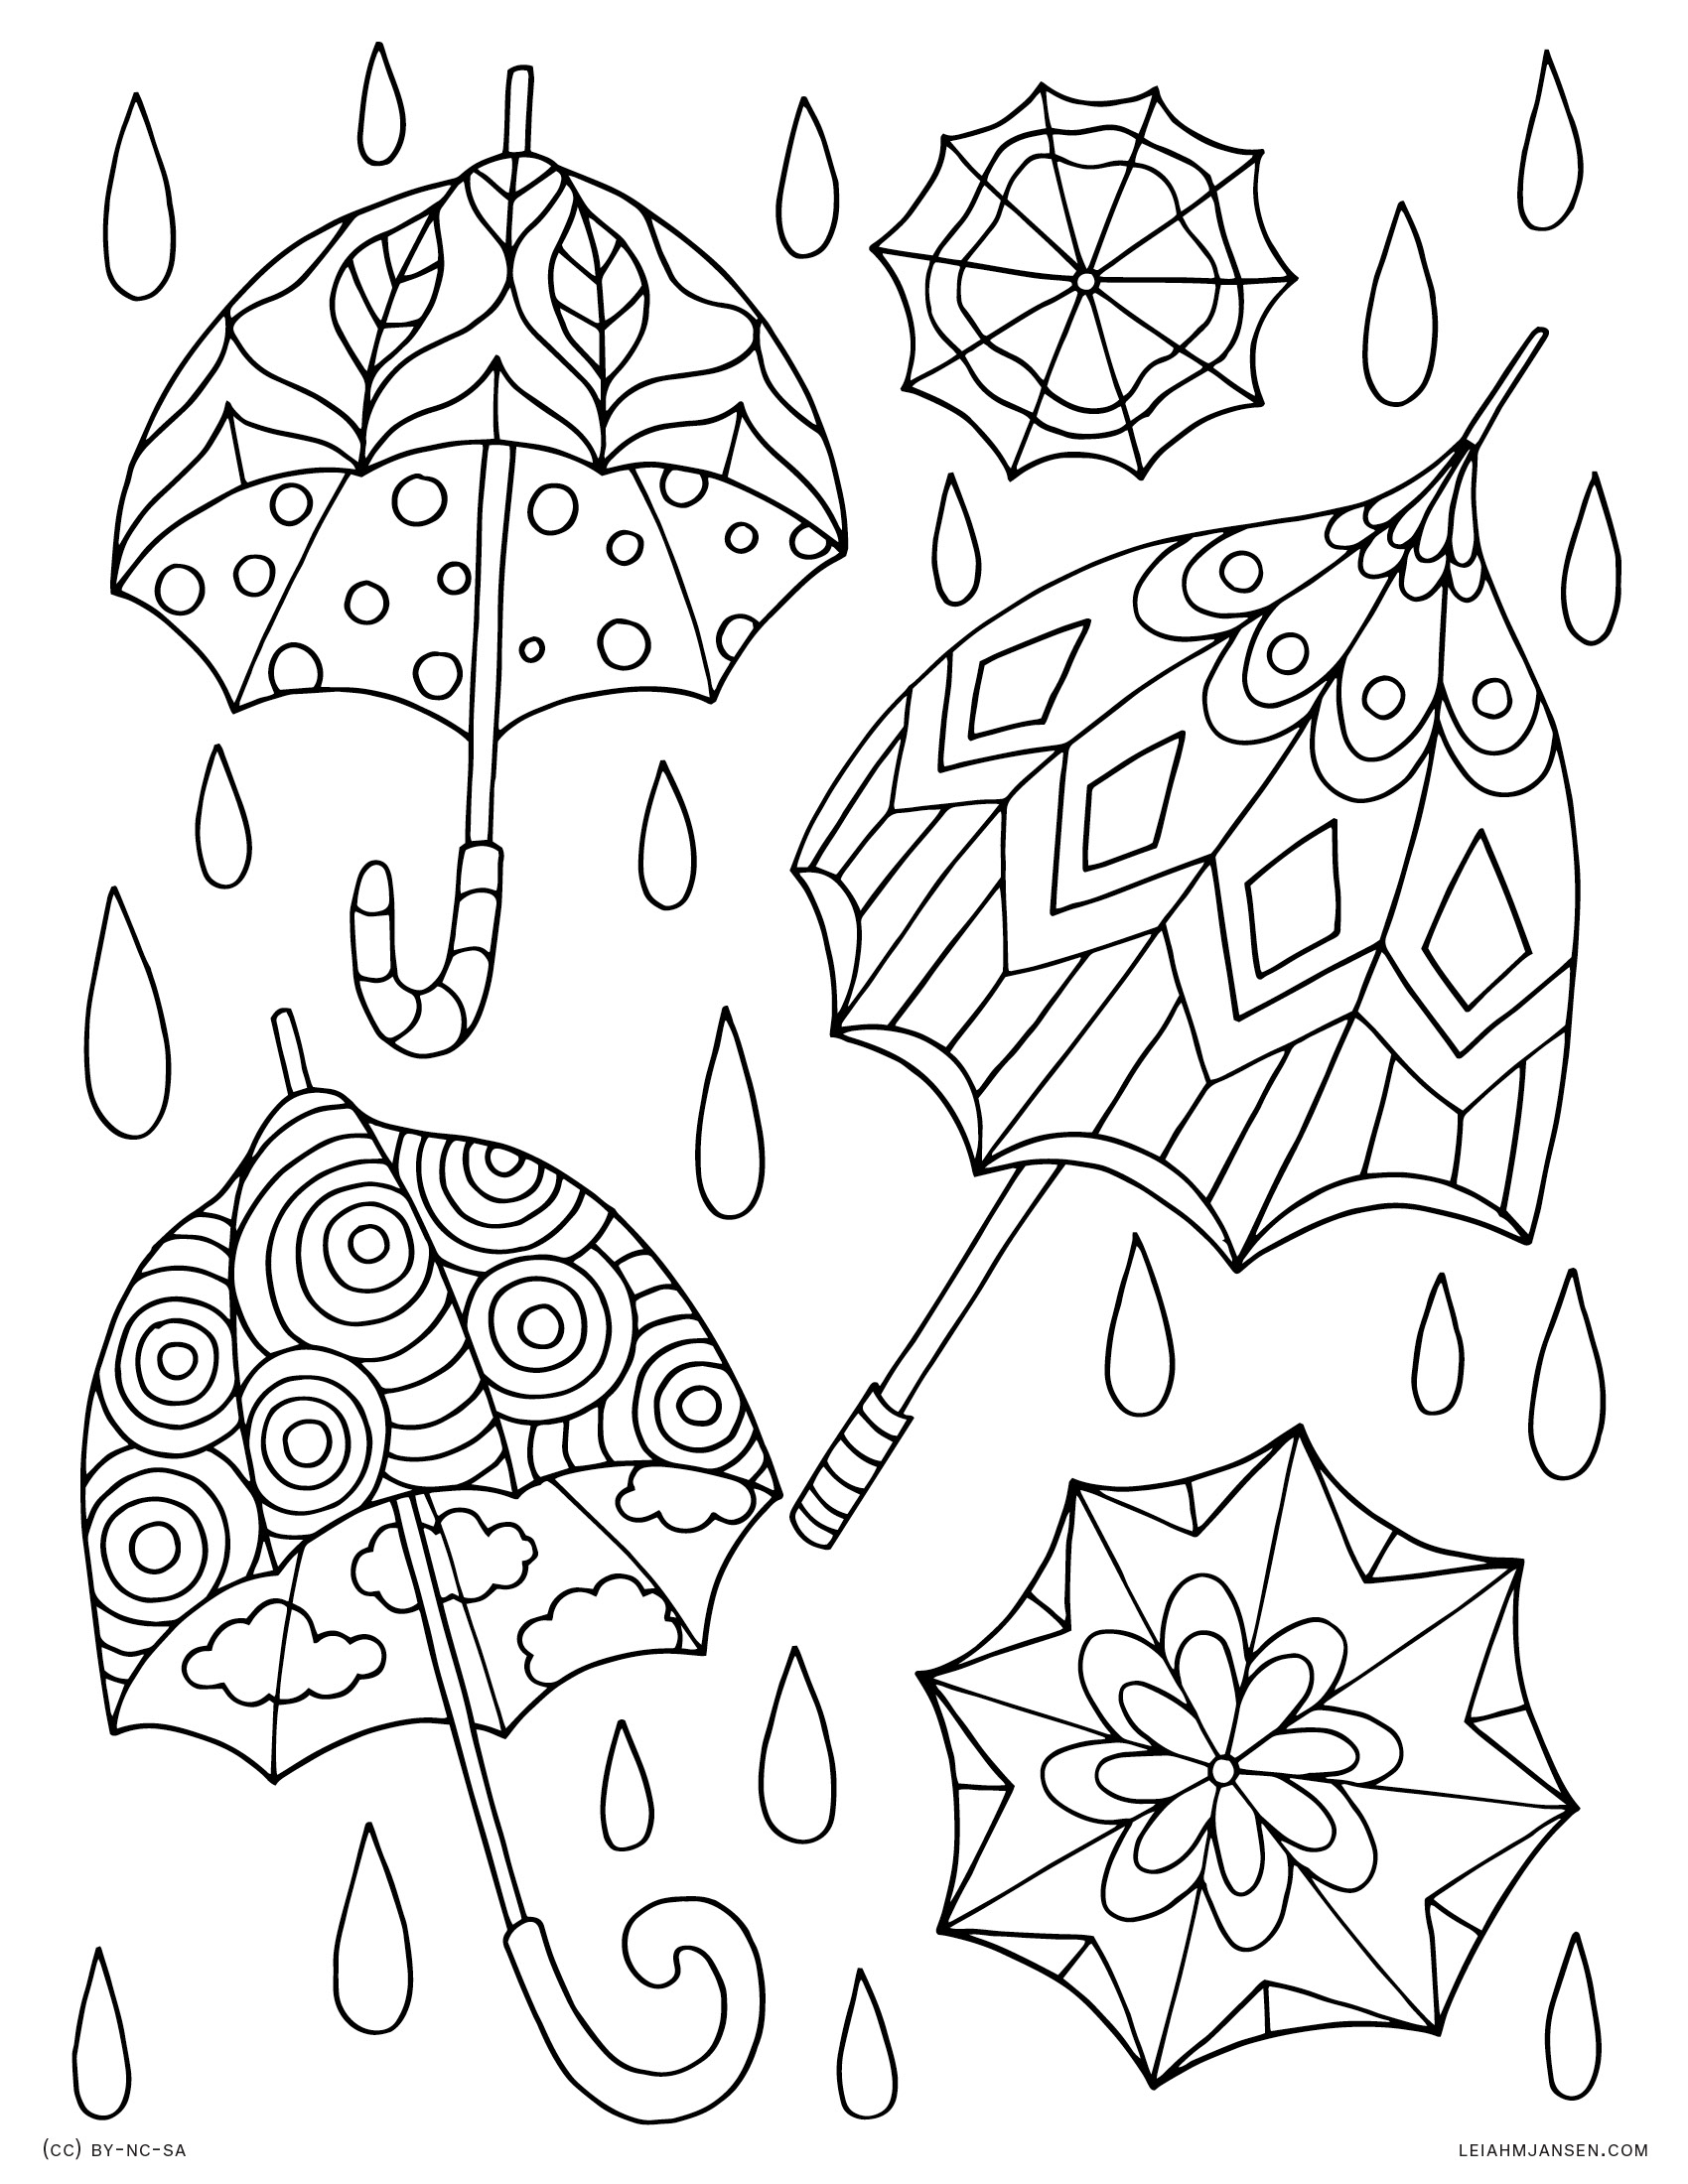 summertime coloring pages - photo#39